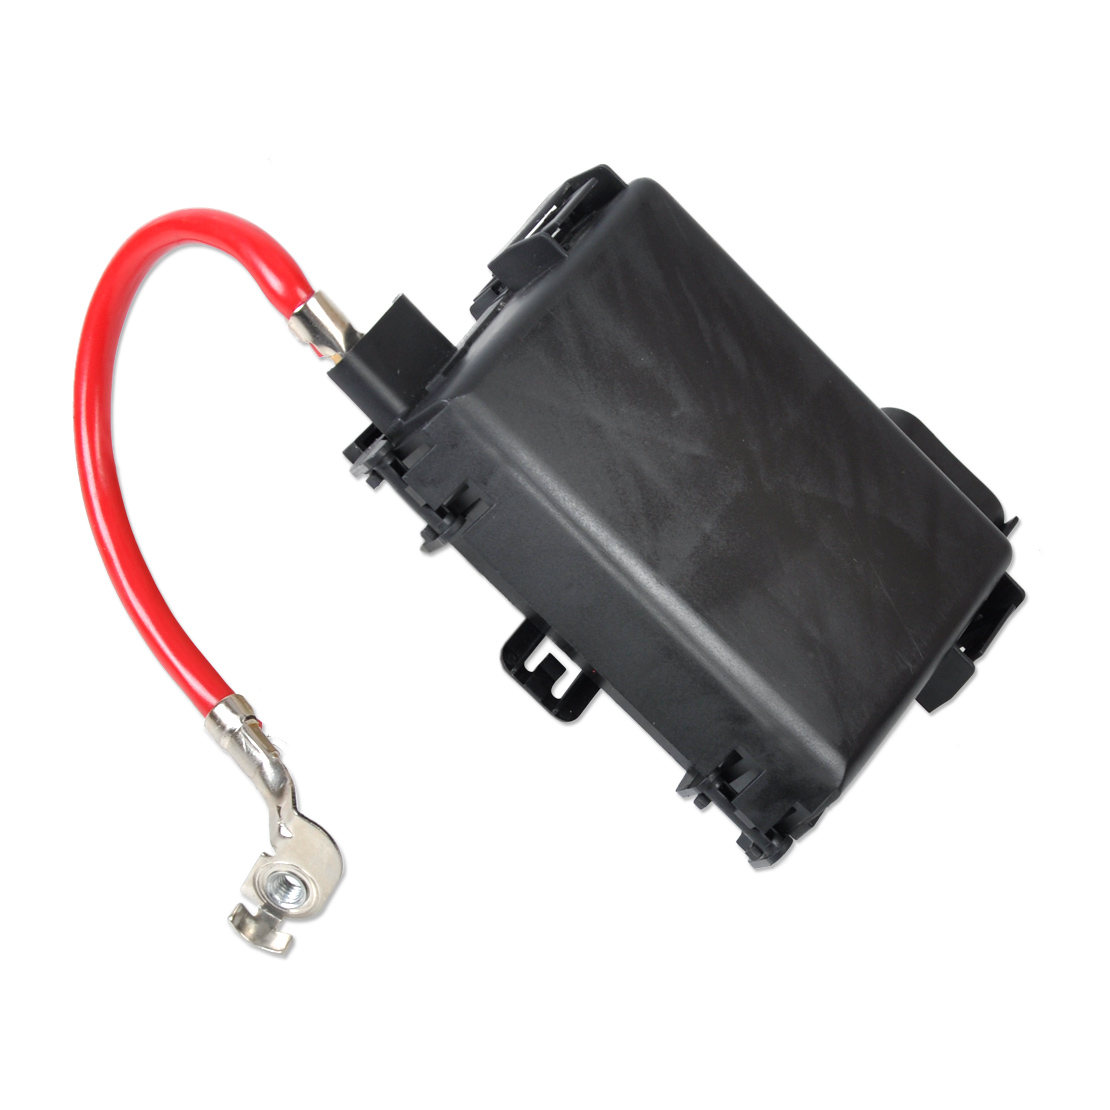 DWCX New Black Fuse Box Battery Terminal 1J0937550A 1J0 937 550A for VW Beetle Golf Jetta Bora MK4 Audi A3 Skoda Octavia image